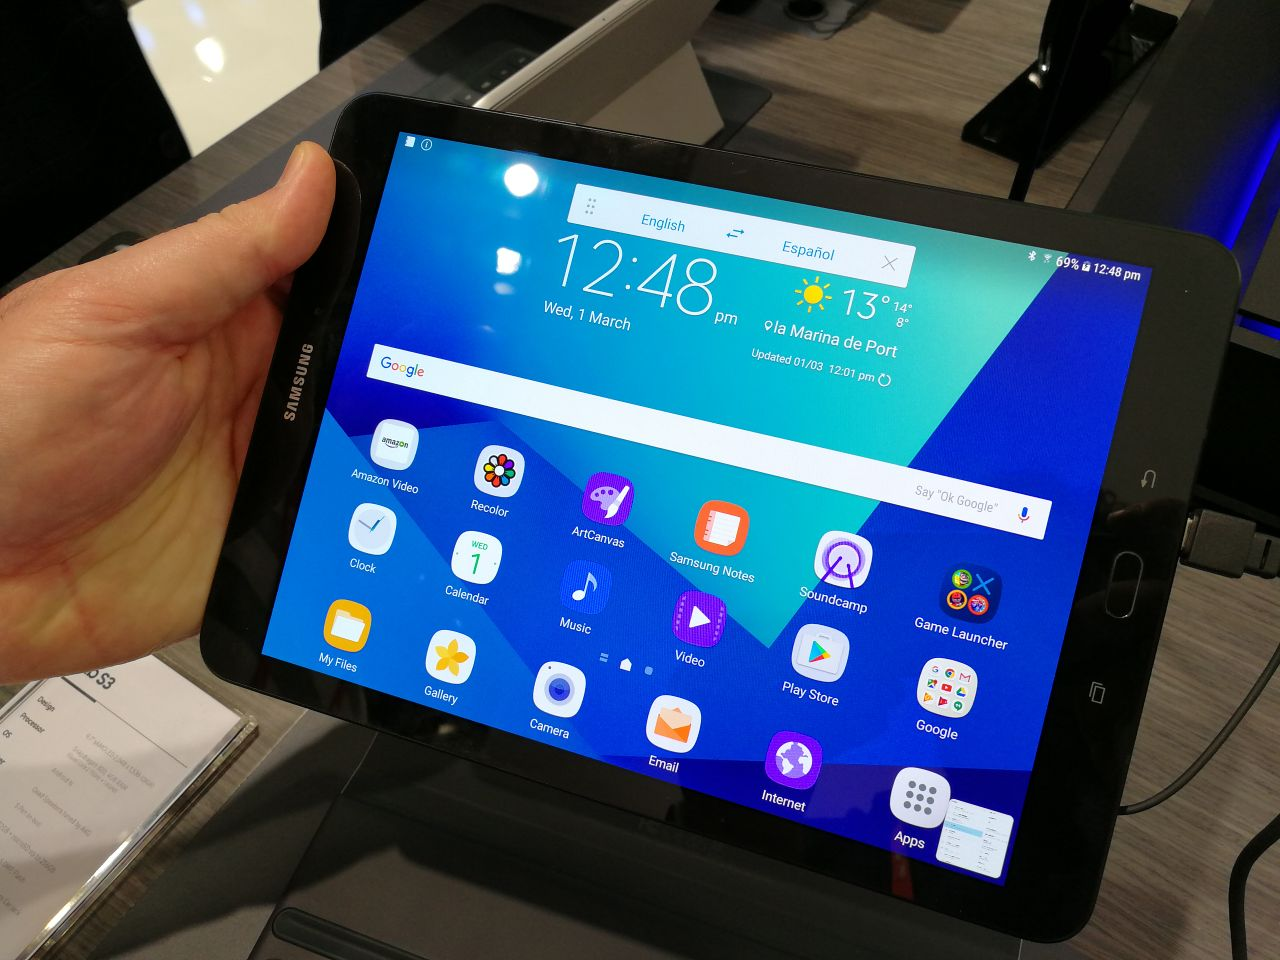 Samsung Galaxy Tab S3 Hands-on: A Good Tablet You'll End